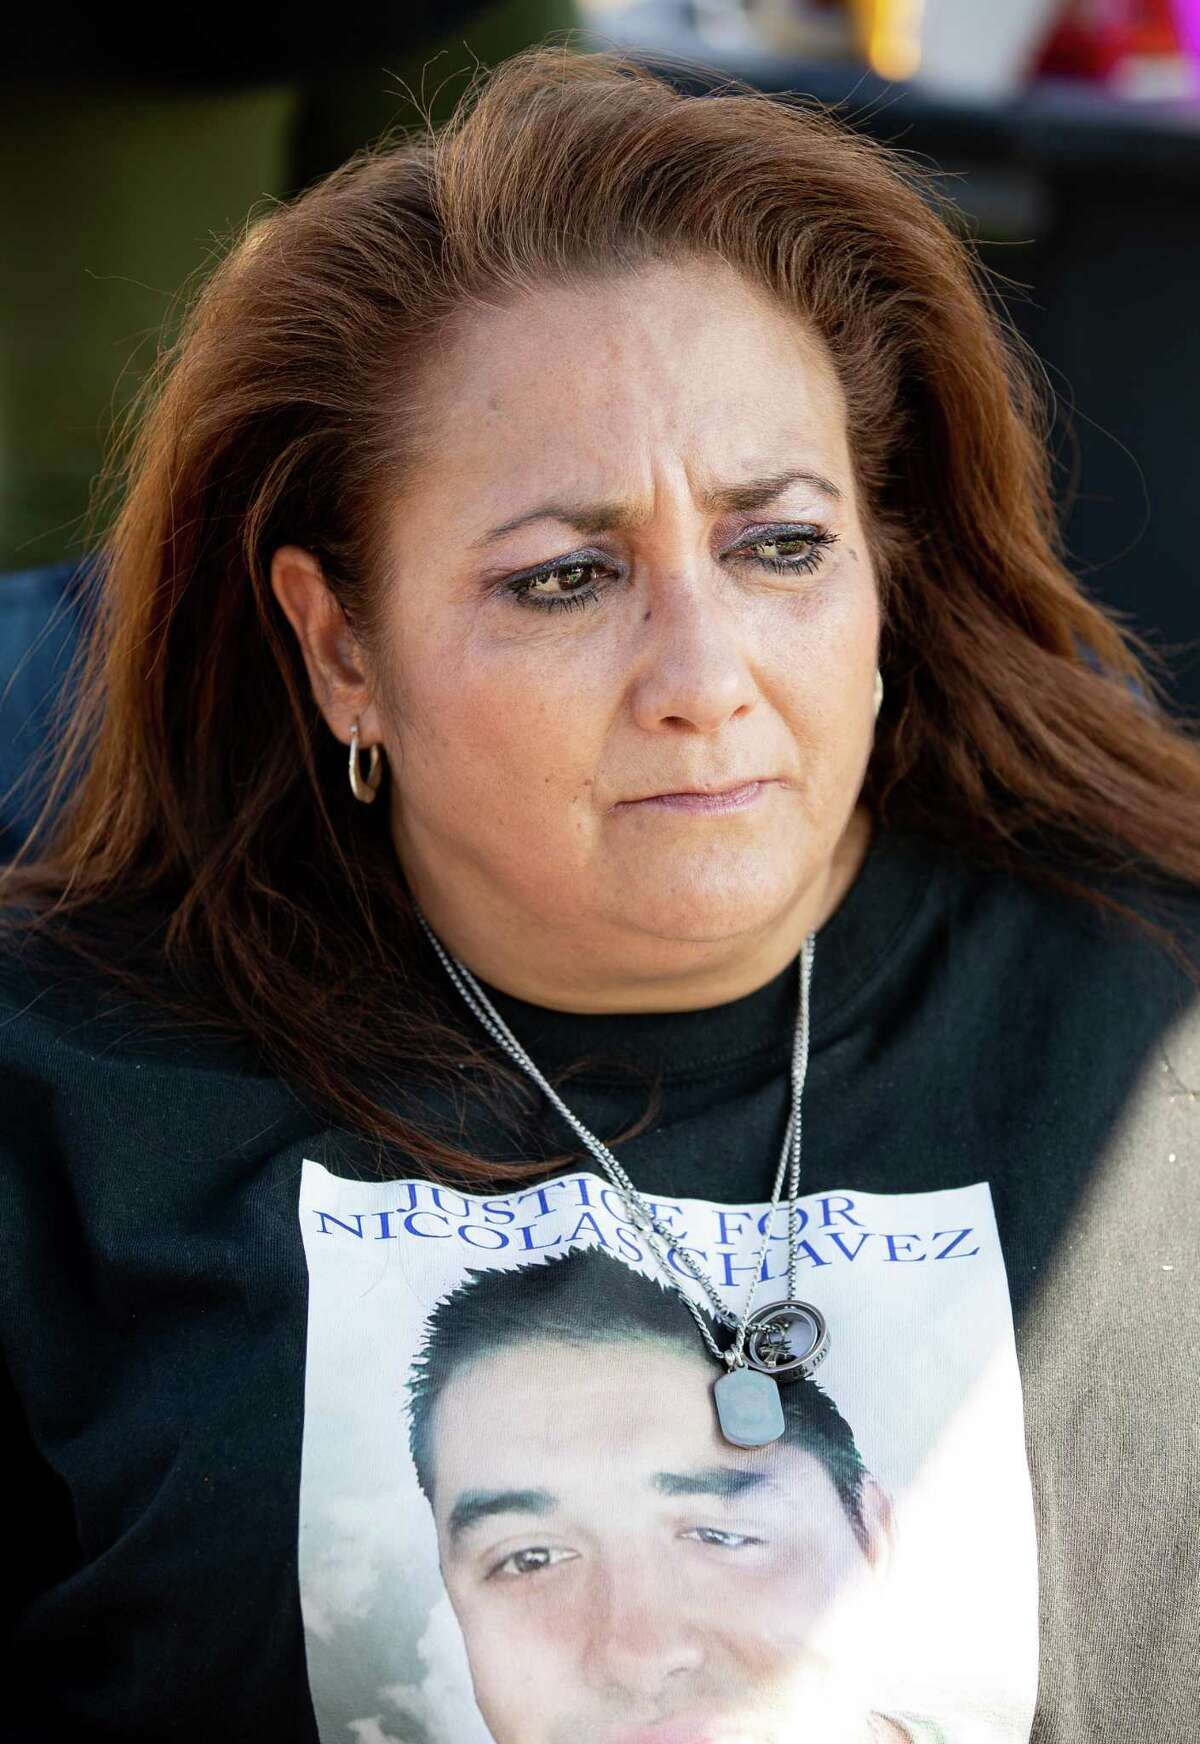 Leantha Chavez, center, wears a necklace with the picture of her son, Nicolas Chavez, on Wednesday, April 21, 2021, in Houston. Chavez's family is marking one year since his death by holding a cookout on the intersection where he was fatally shot by Houston Police.